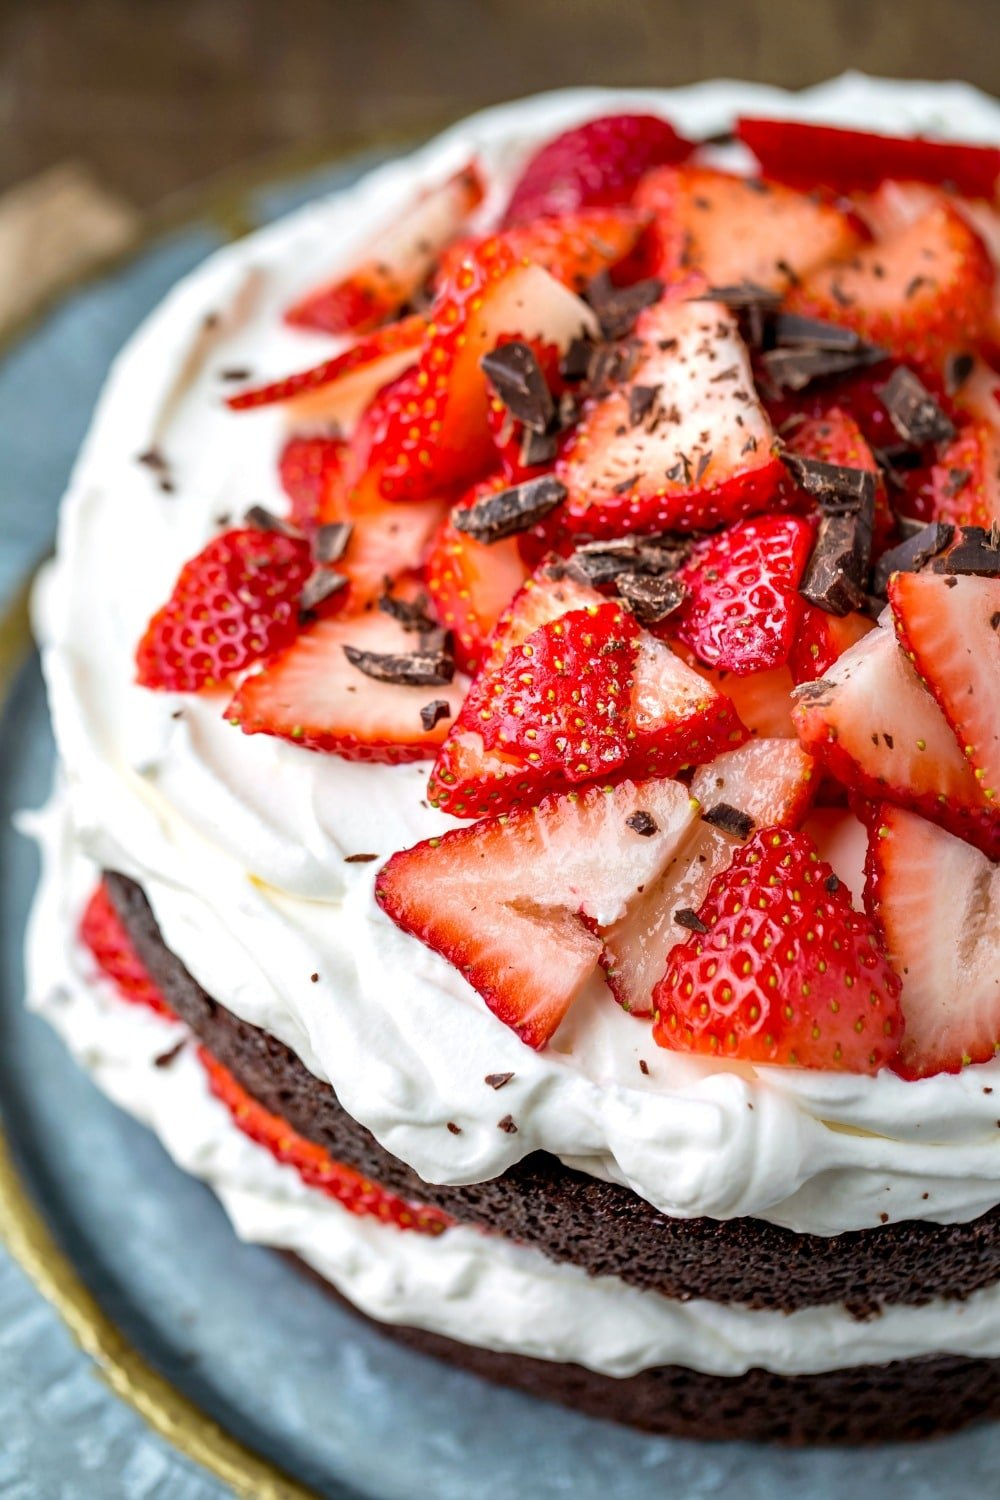 Calories In One Piece Of Strawberry Cake